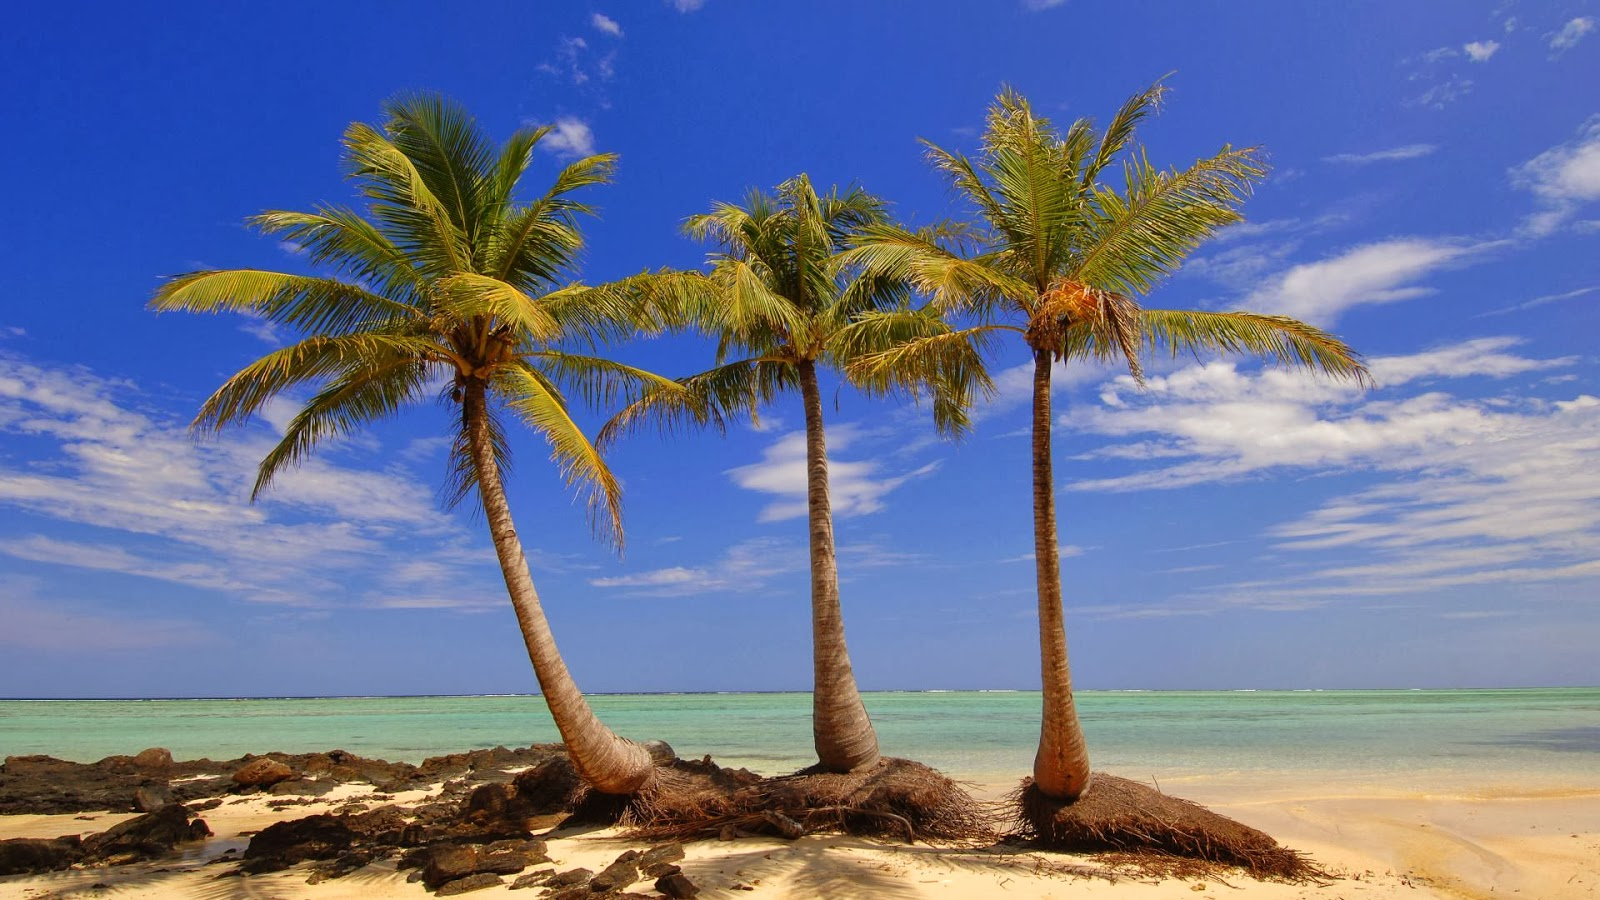 Palms View Wallpapers